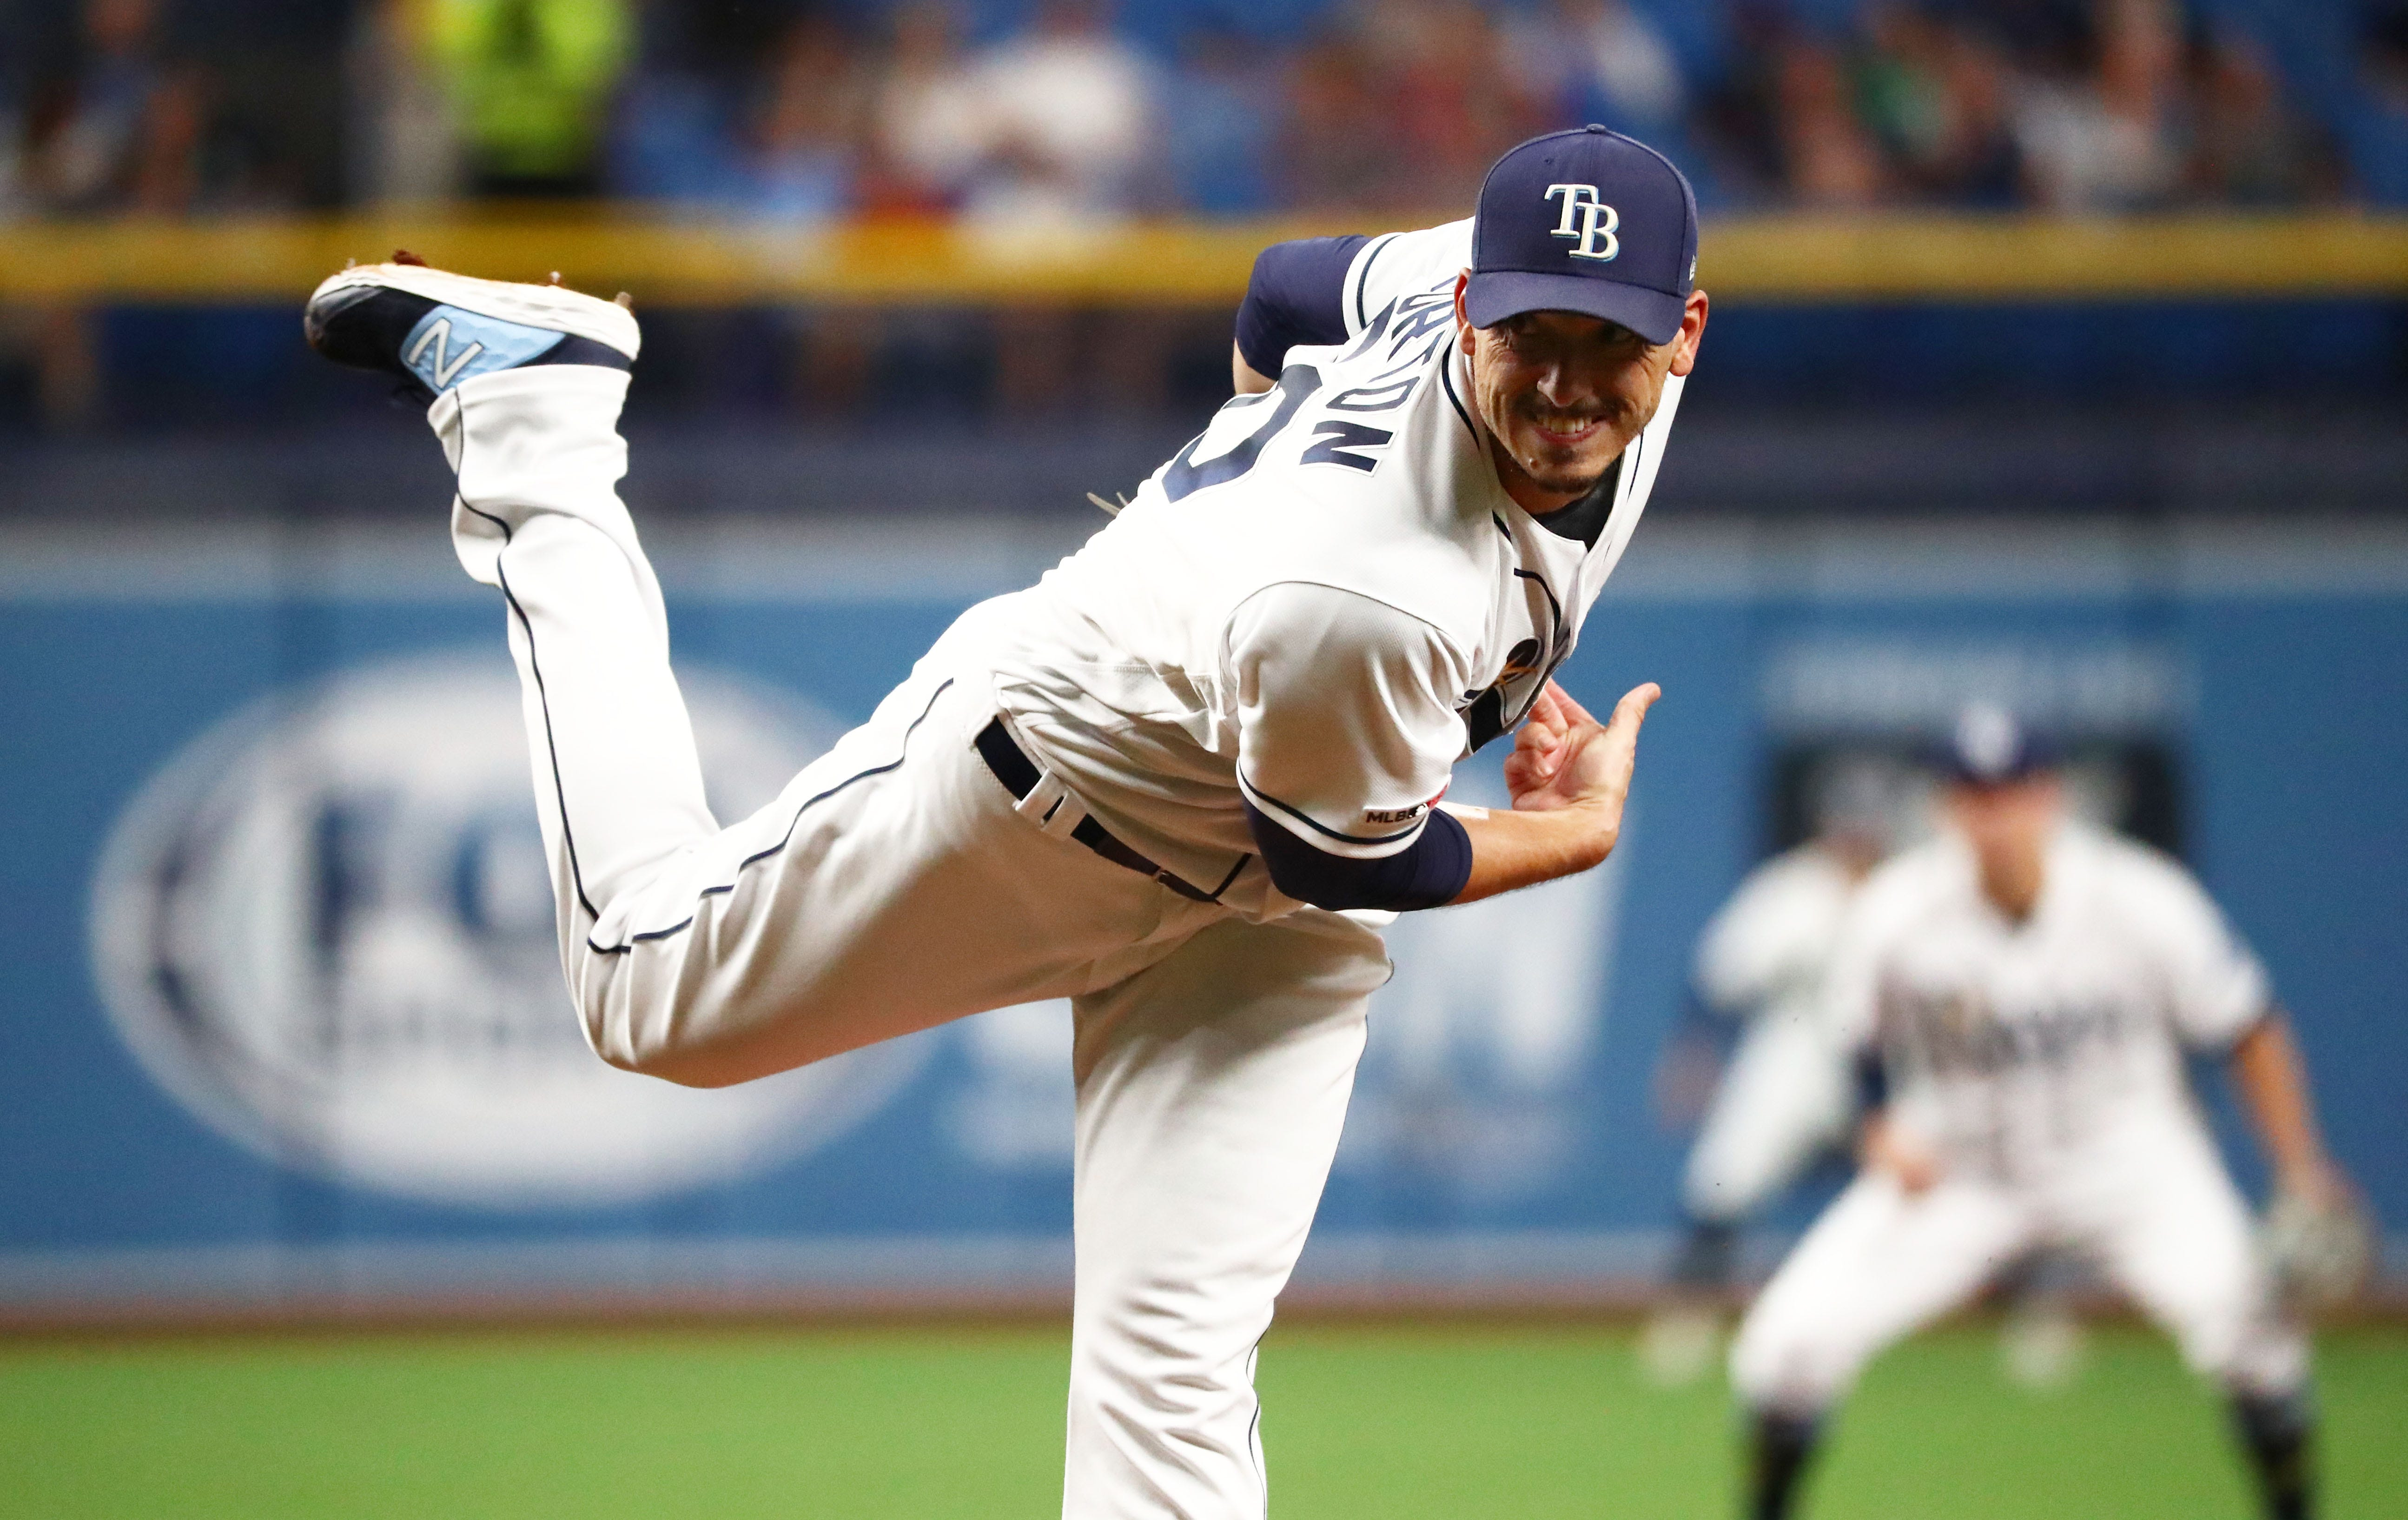 mlb rays charlie morton peaking at 35 has had a long road to top usa today